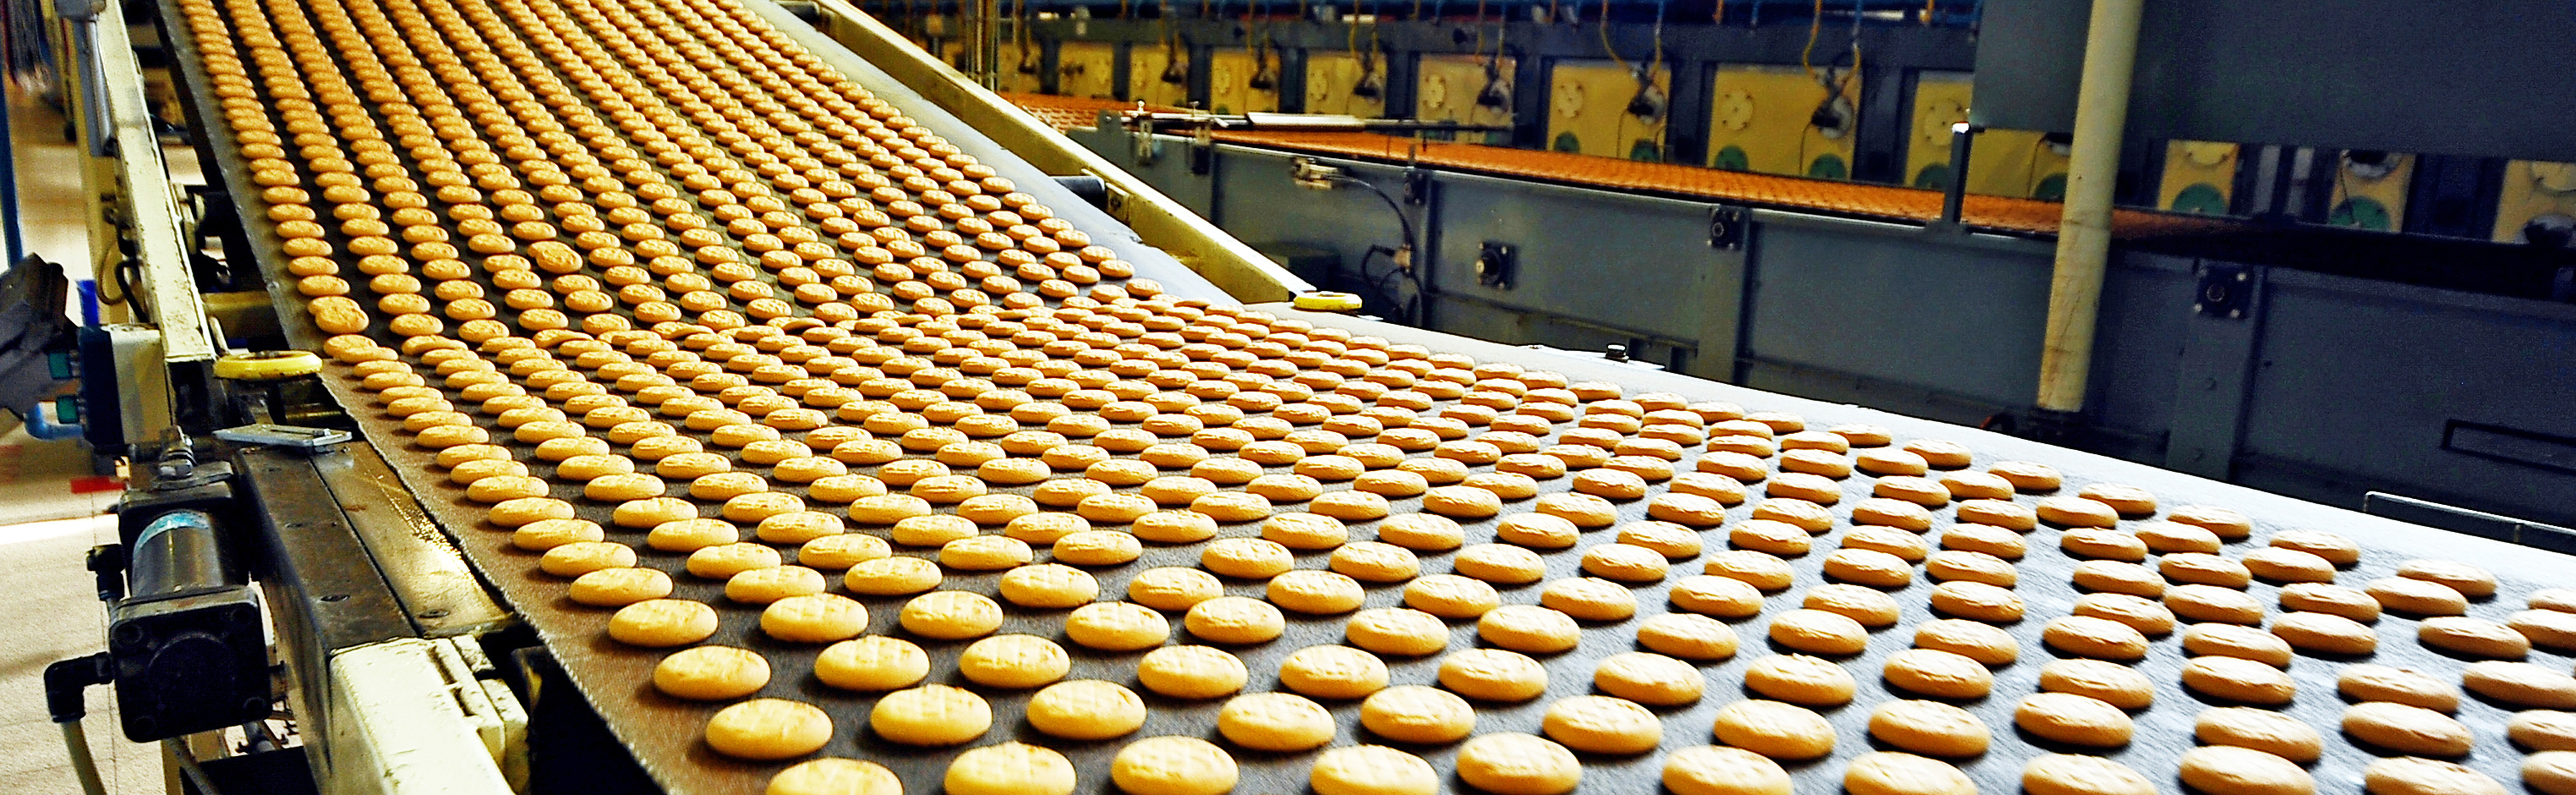 Cookies production line food safety